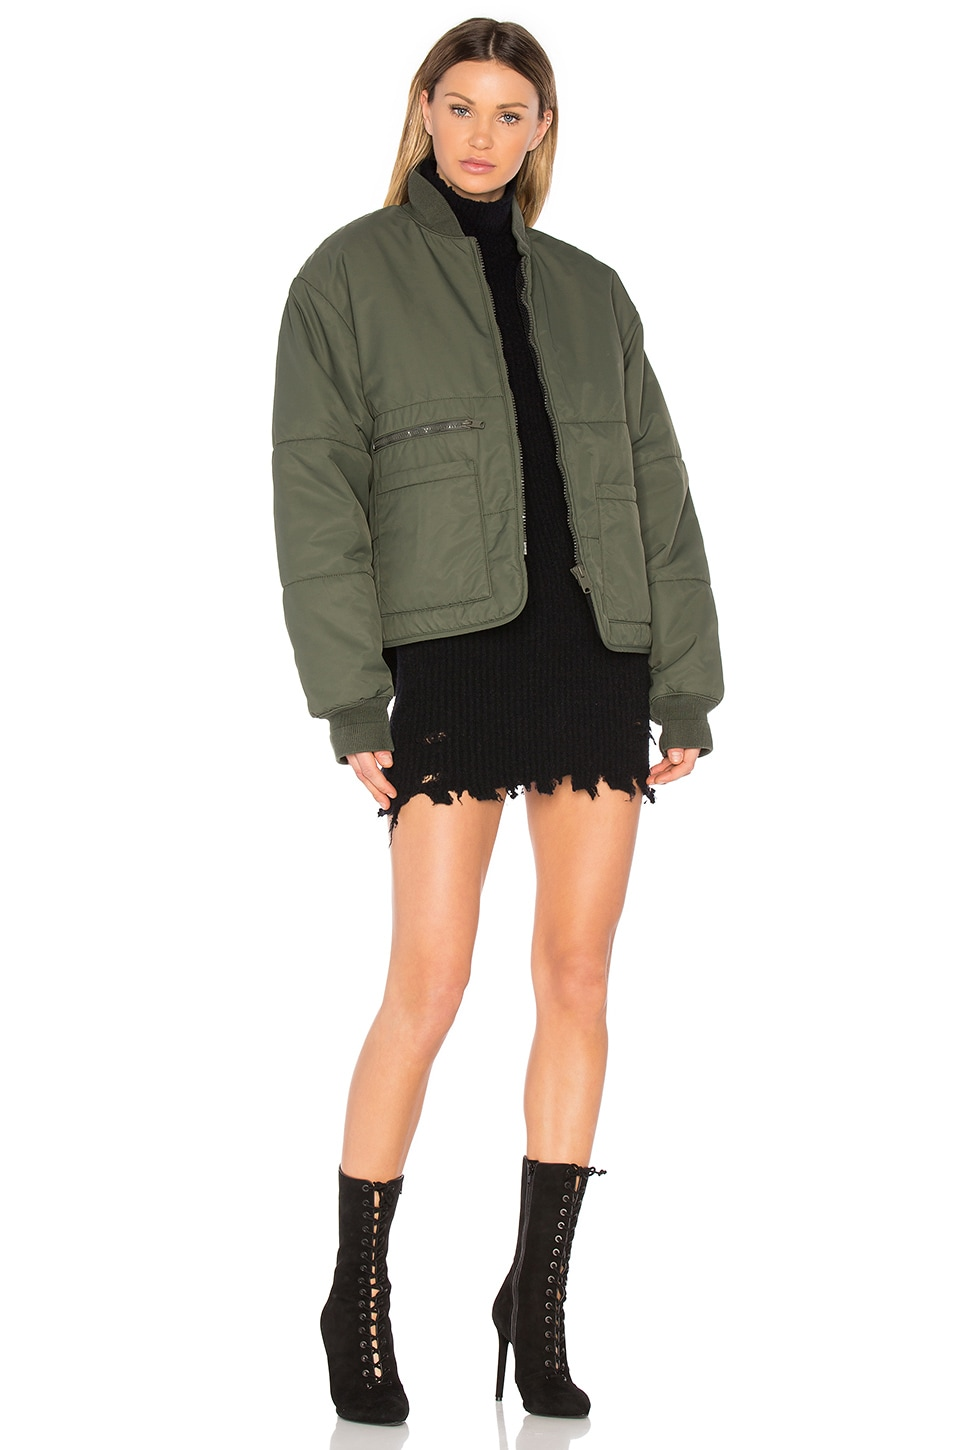 YEEZY Season 3 Puffer Bomber Jacket in Stone Dark